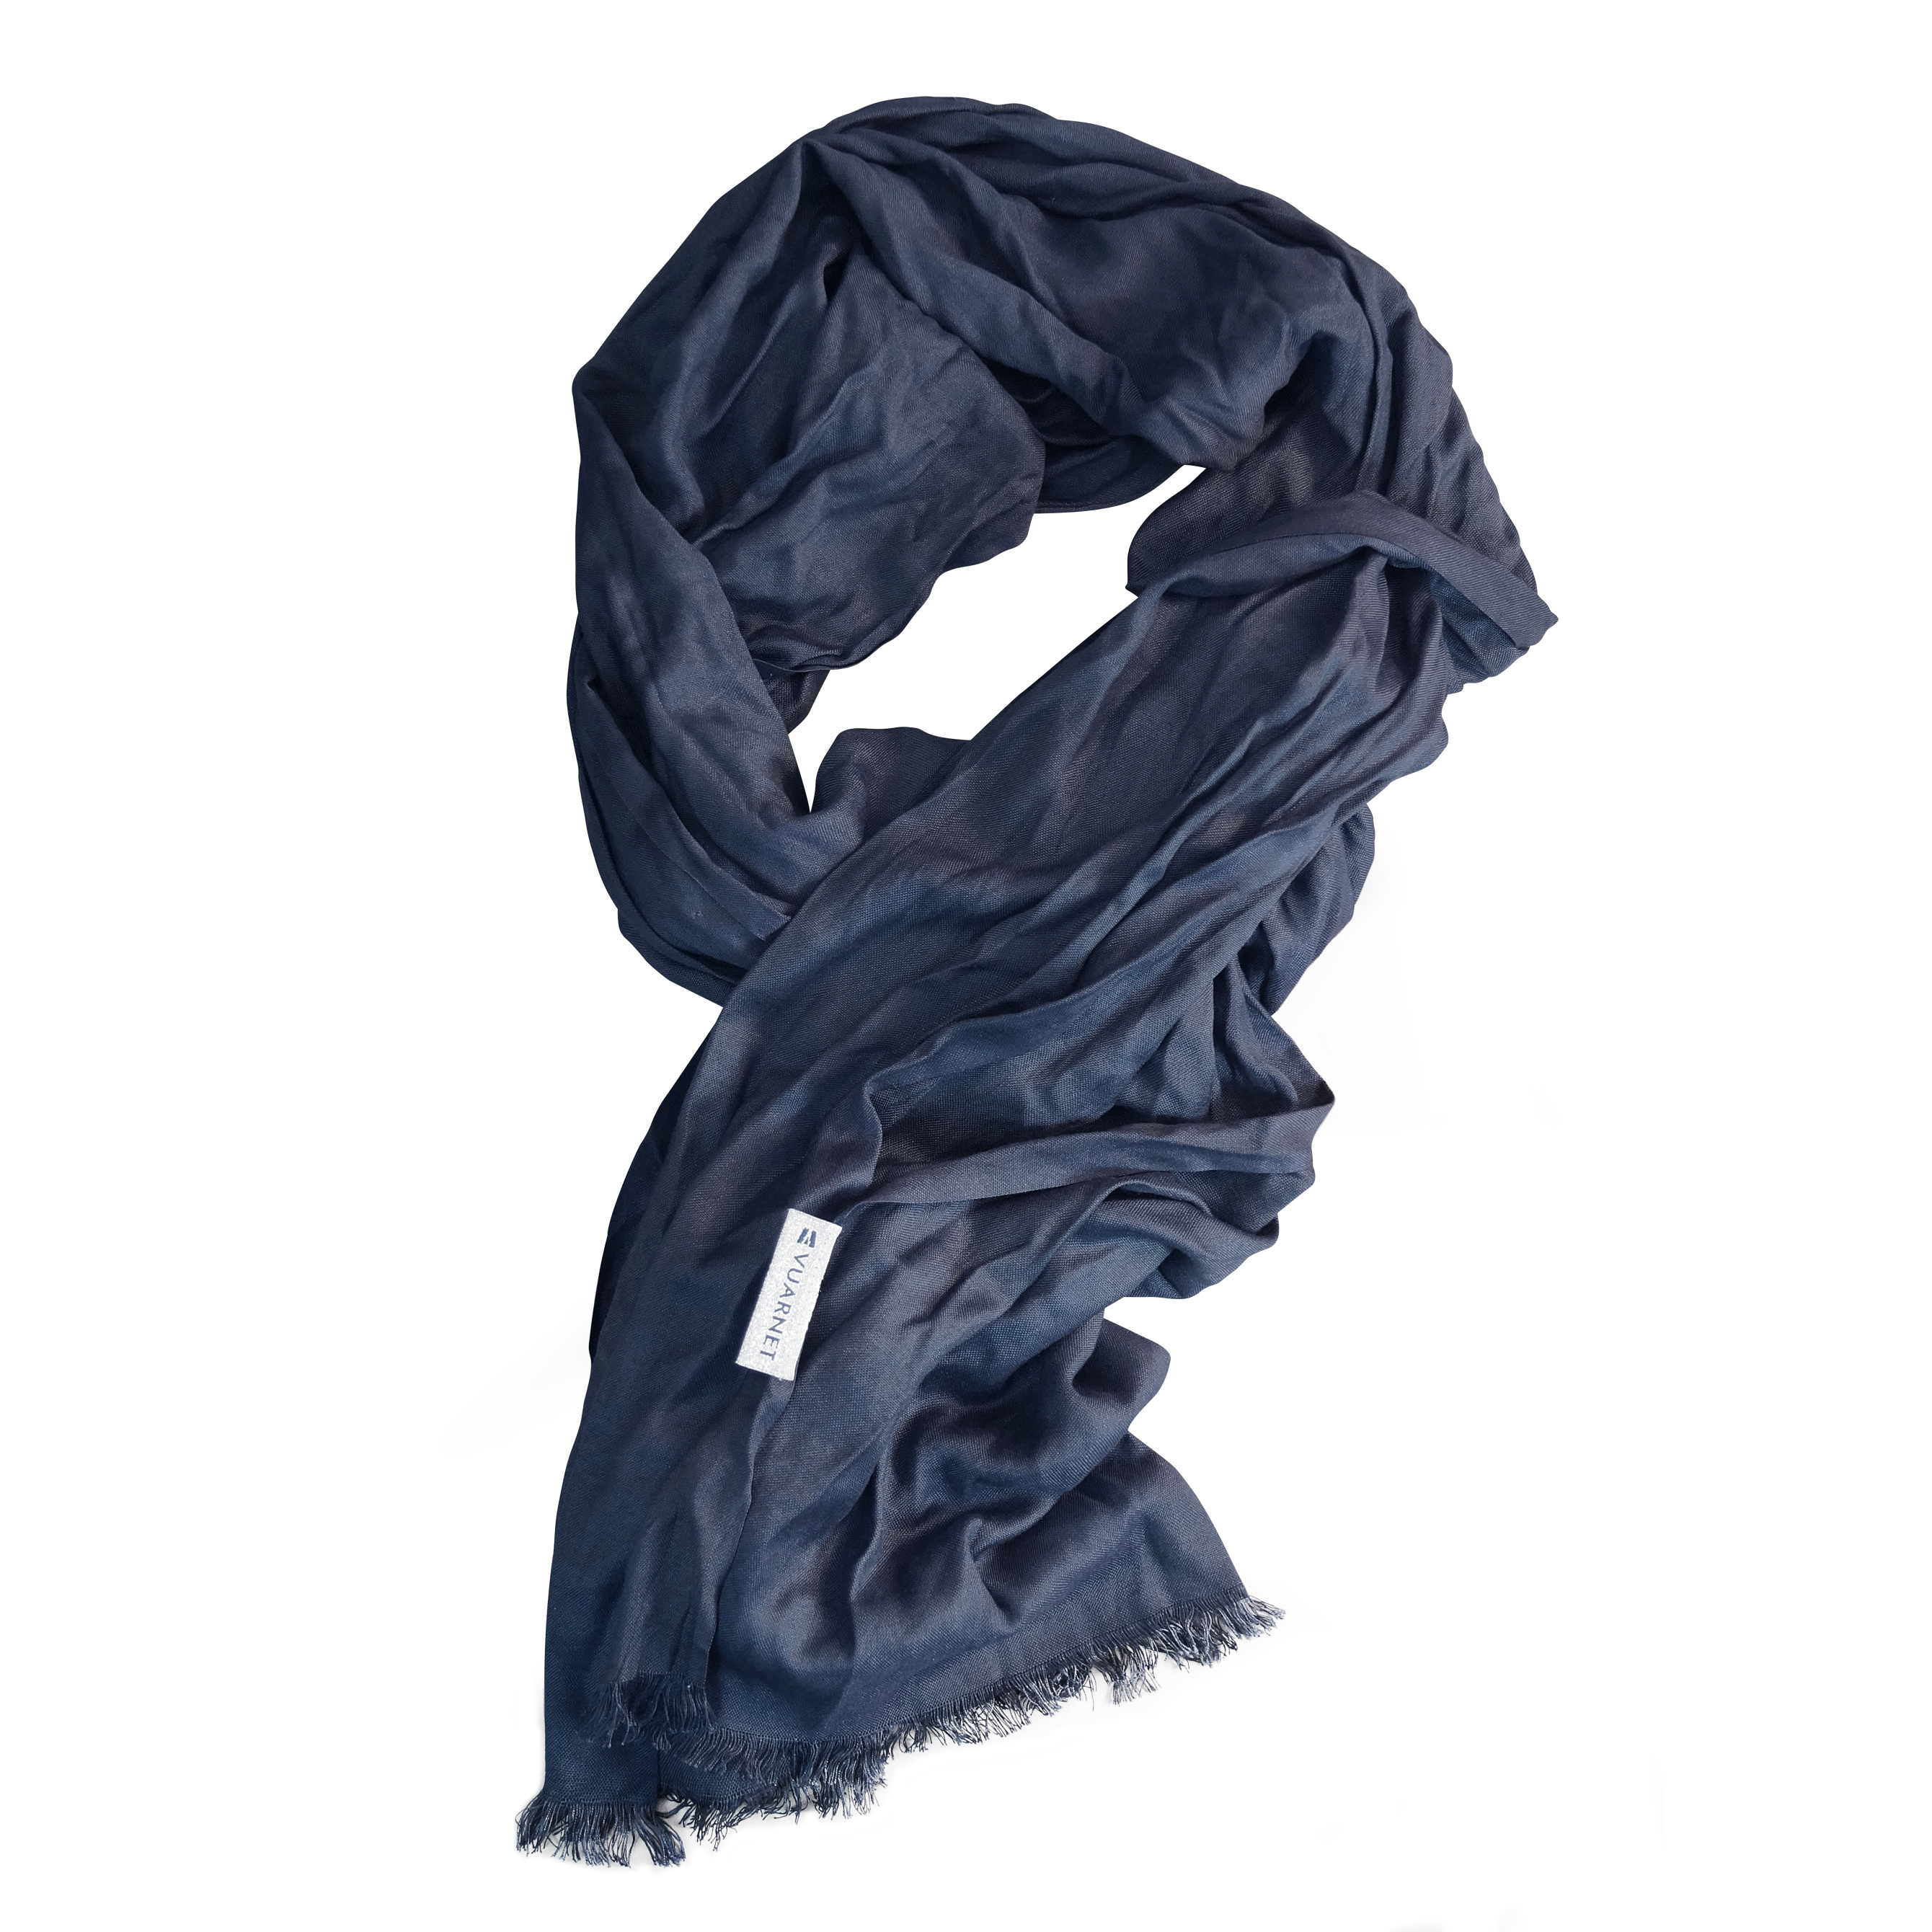 Foulard promotionnel Vuarnet SMART - article publicitaire